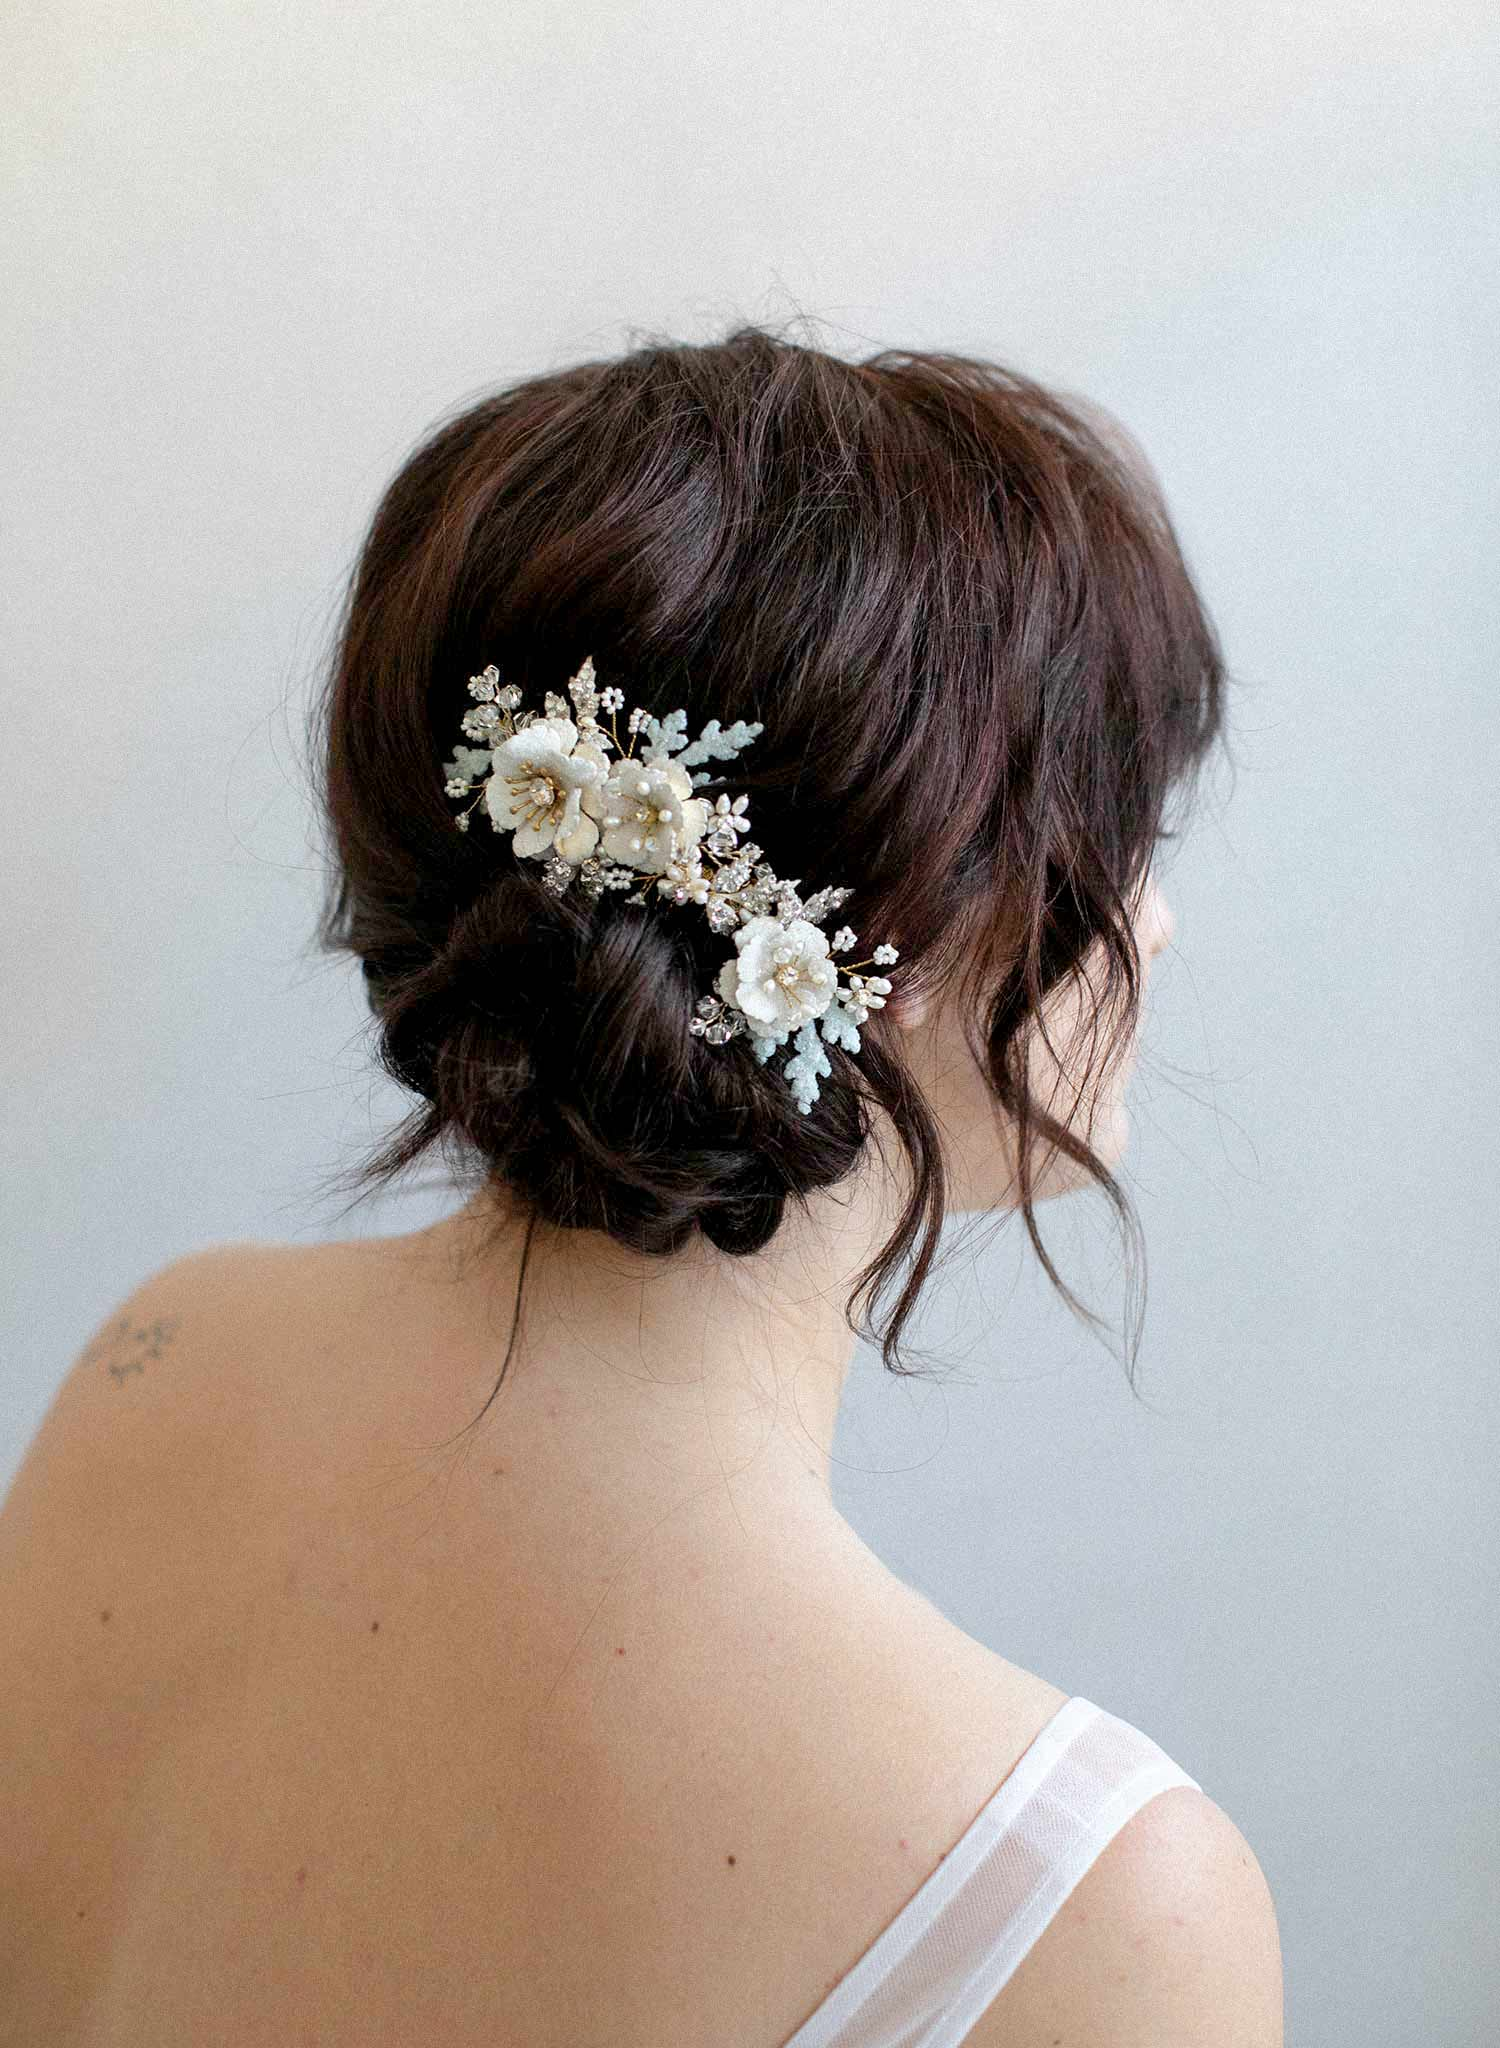 Sugared floral hair comb with dusty miller leaves - Style #921